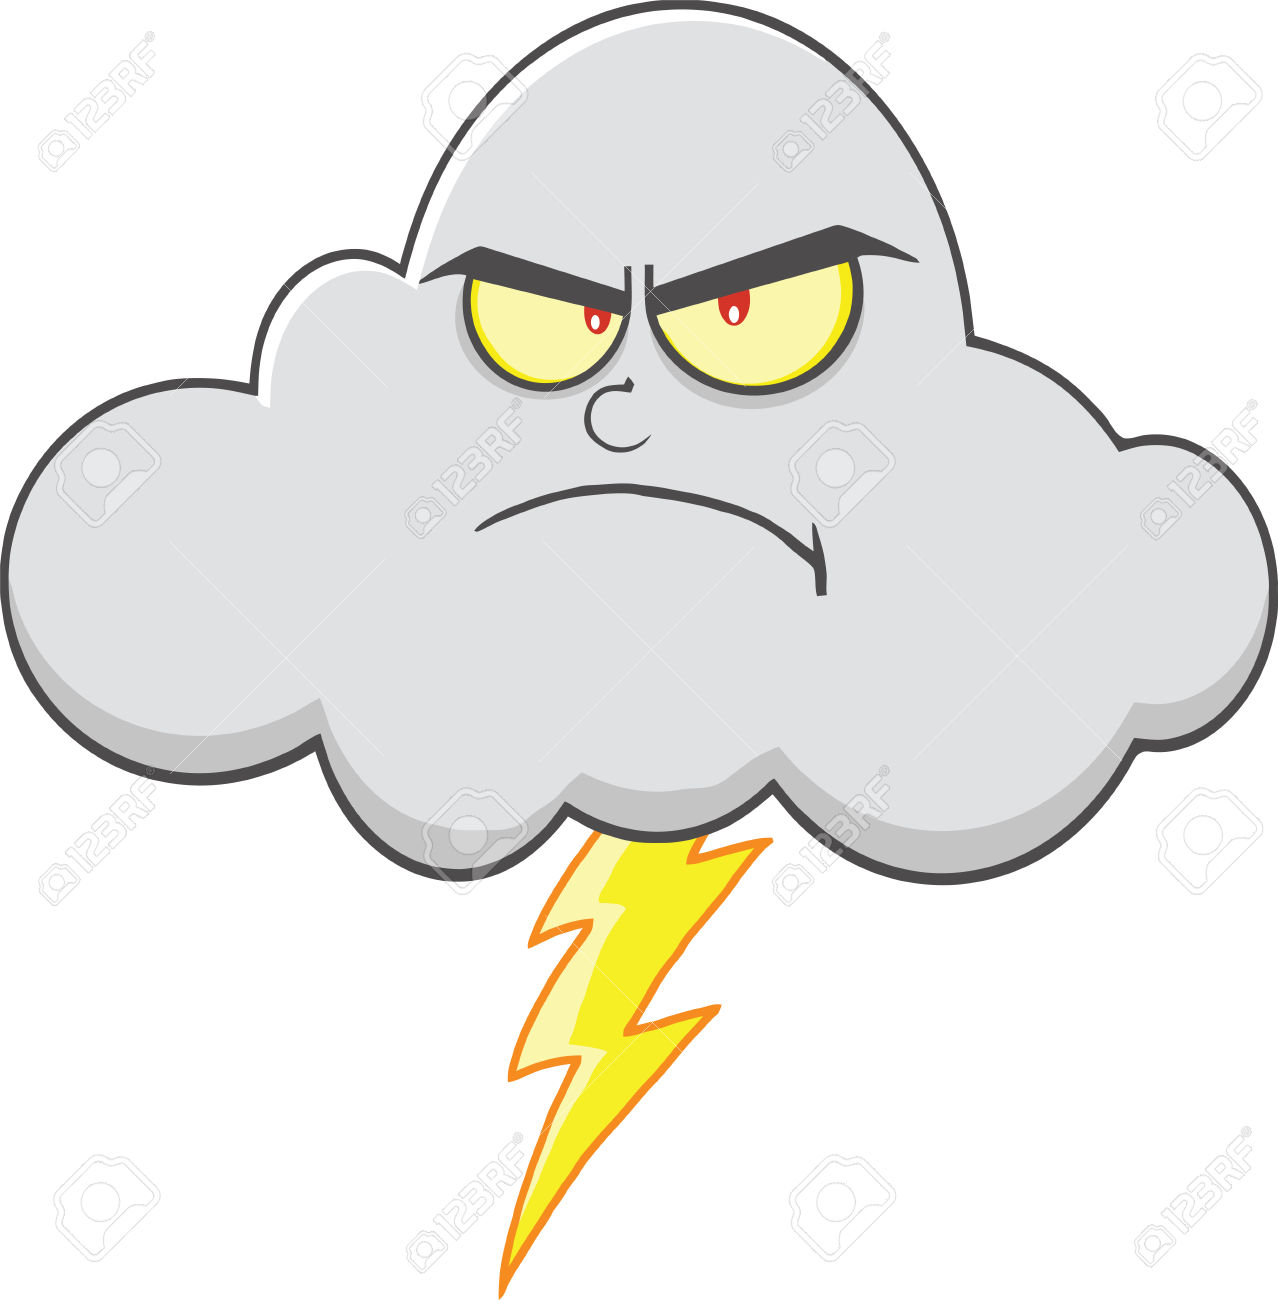 Angry cloud clipart